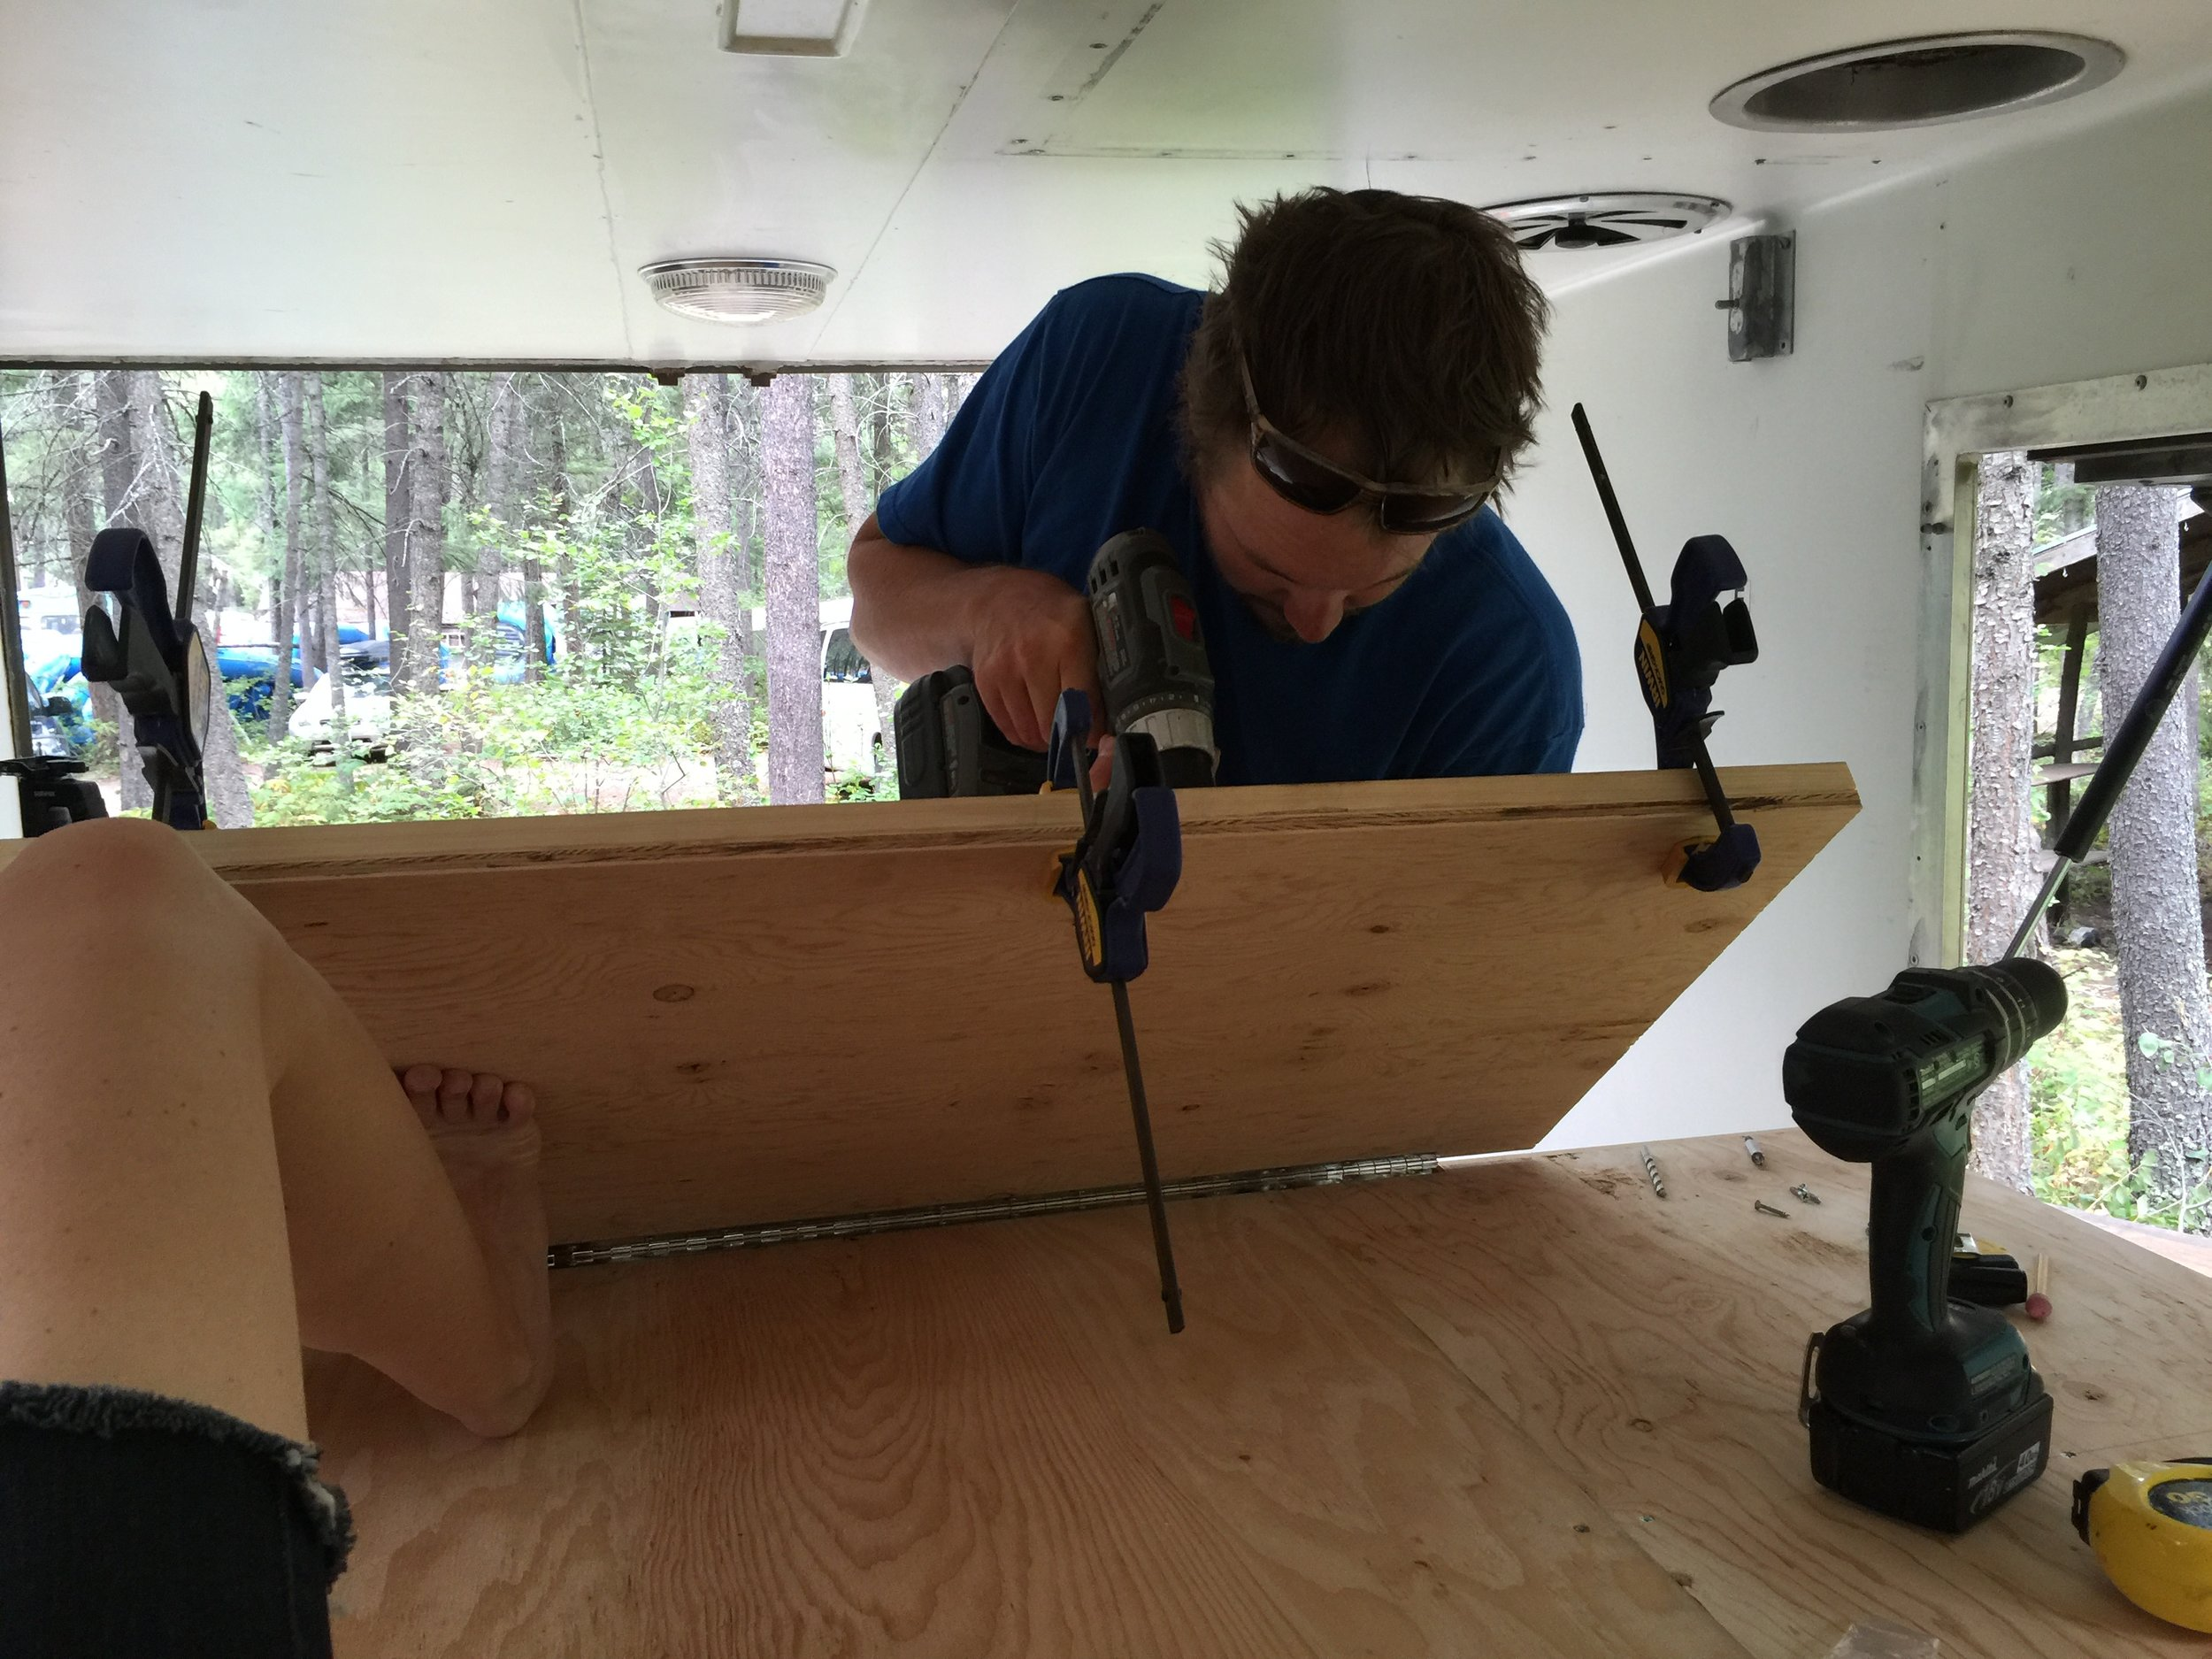 We strengthened the far lip of the fold-out foot of the bed with a 2x6, and then mounted the stow-away support legs to that. I am a large man and I can sit on that 2x6 with no bowing in the wood.